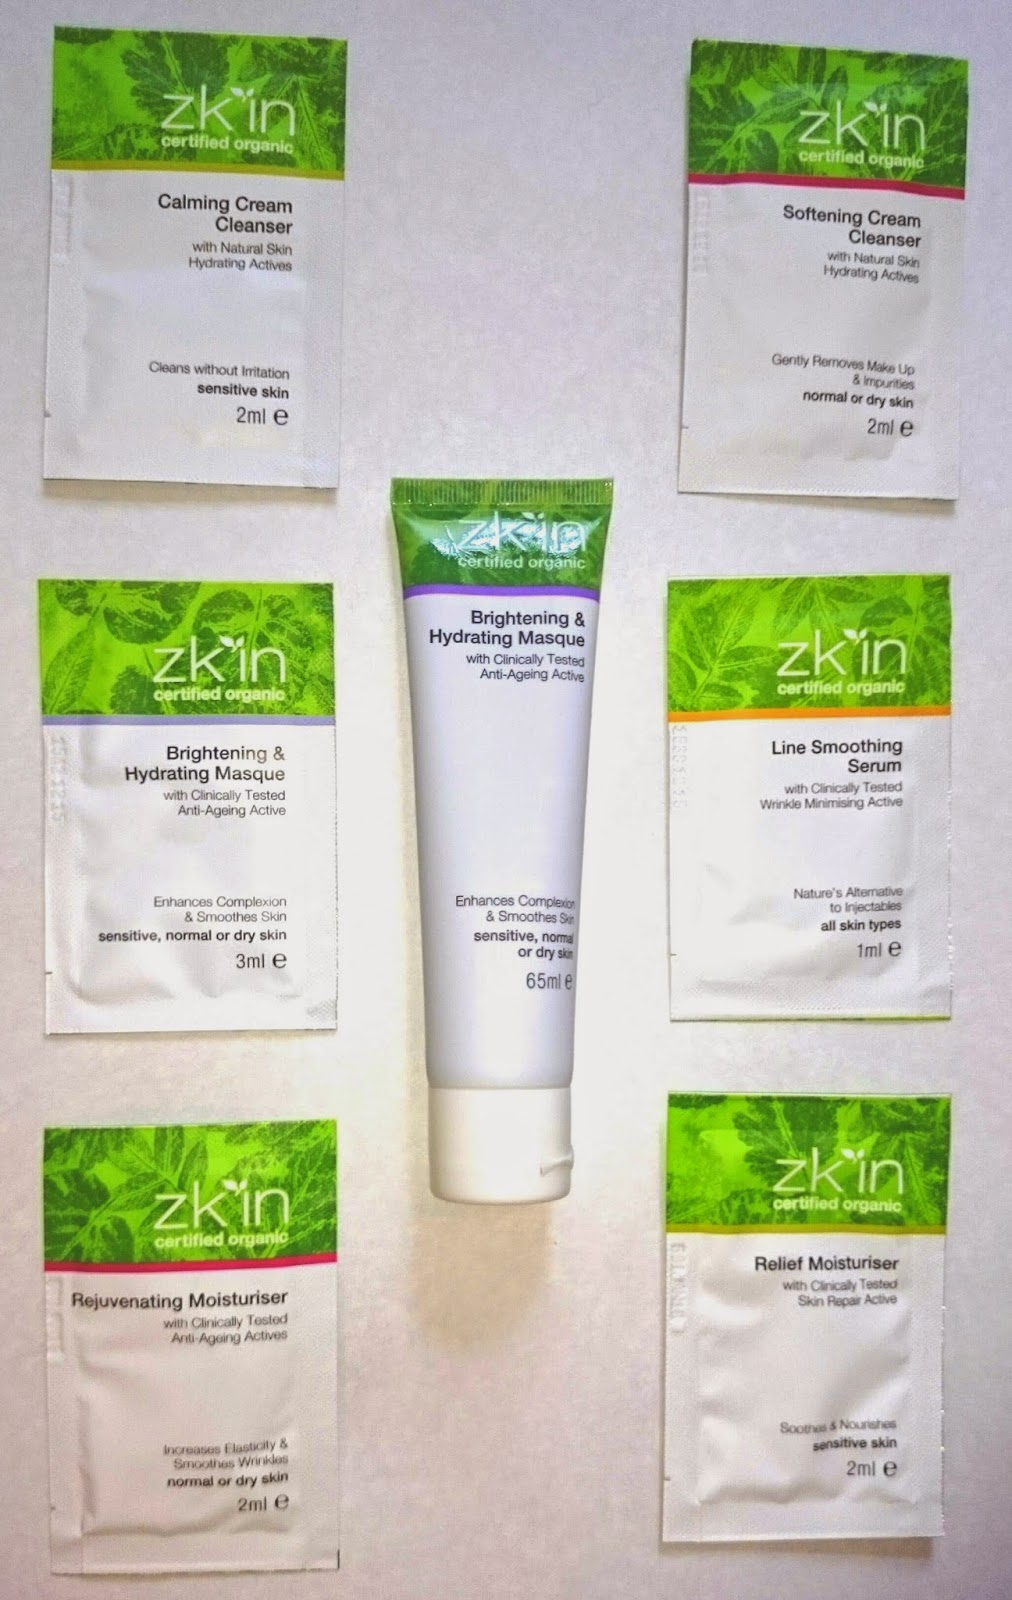 zk'in Brightening and Hydrating Masque, and samples unboxed